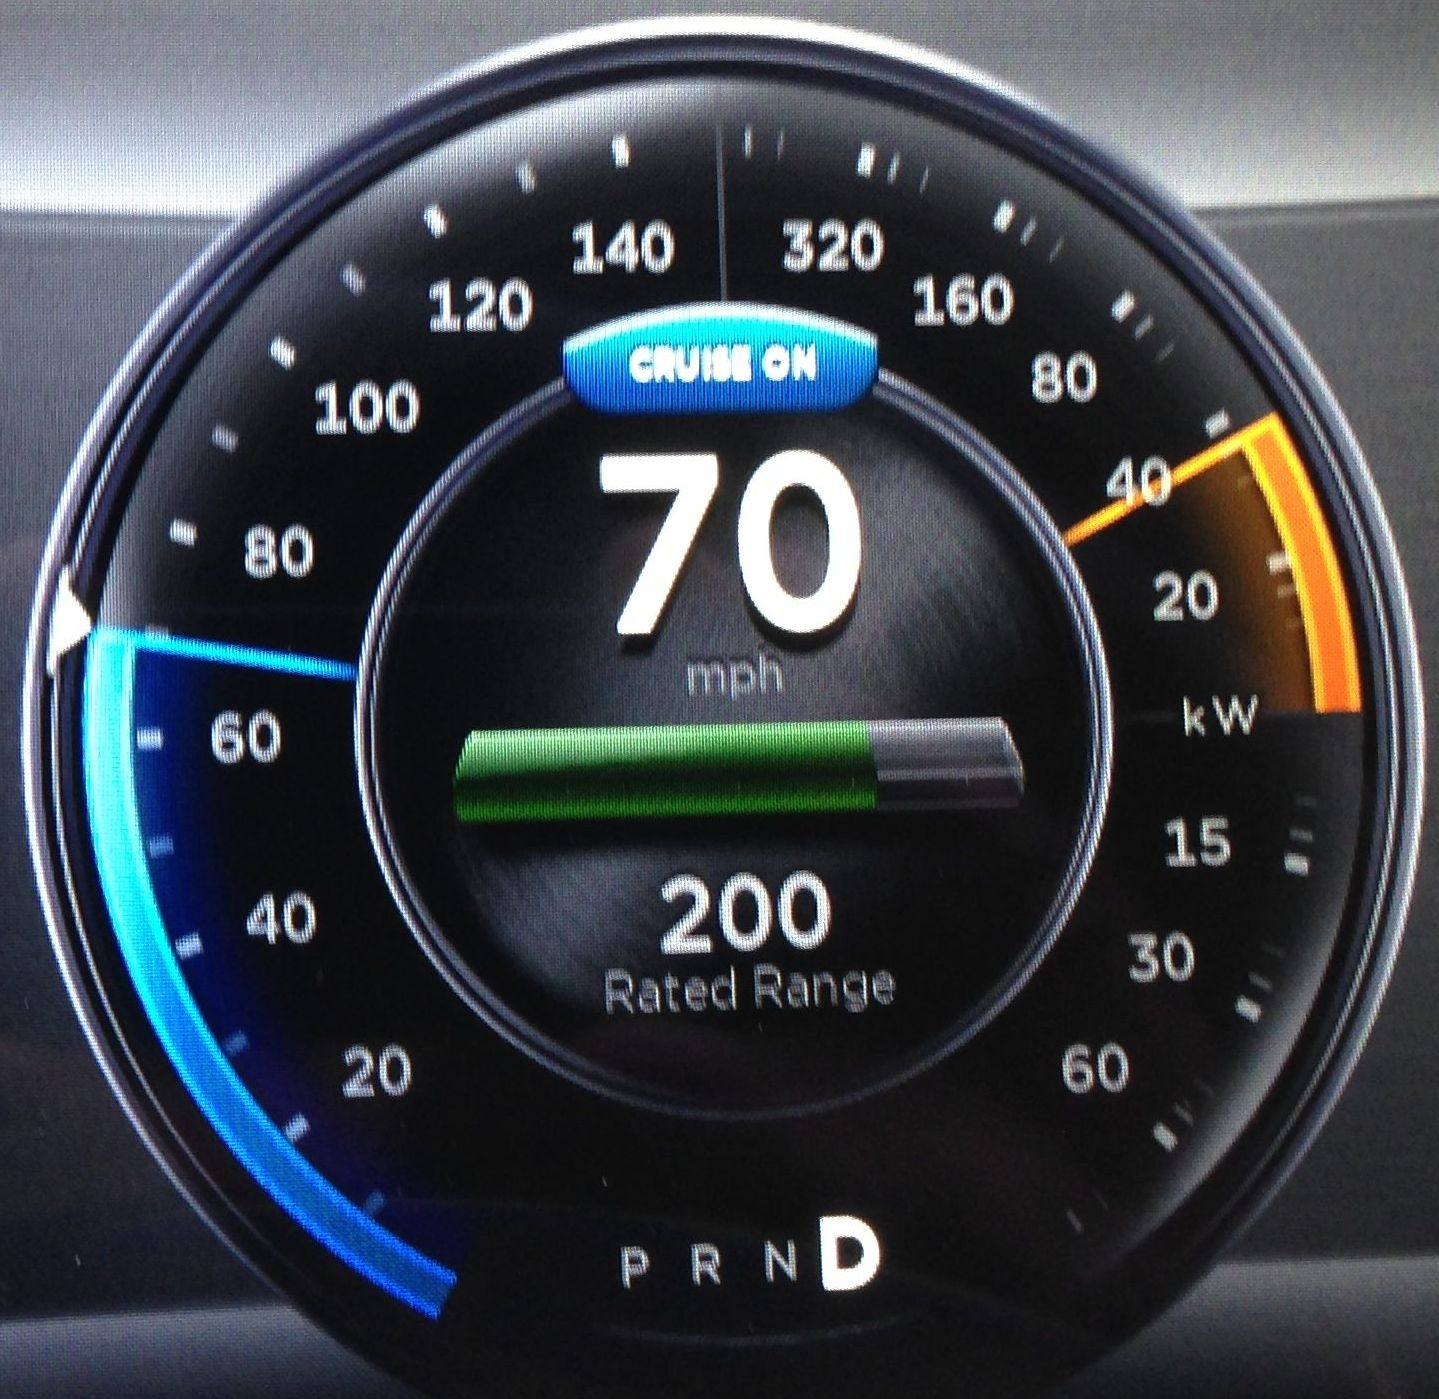 How to use the Tesla Model S cruise control system